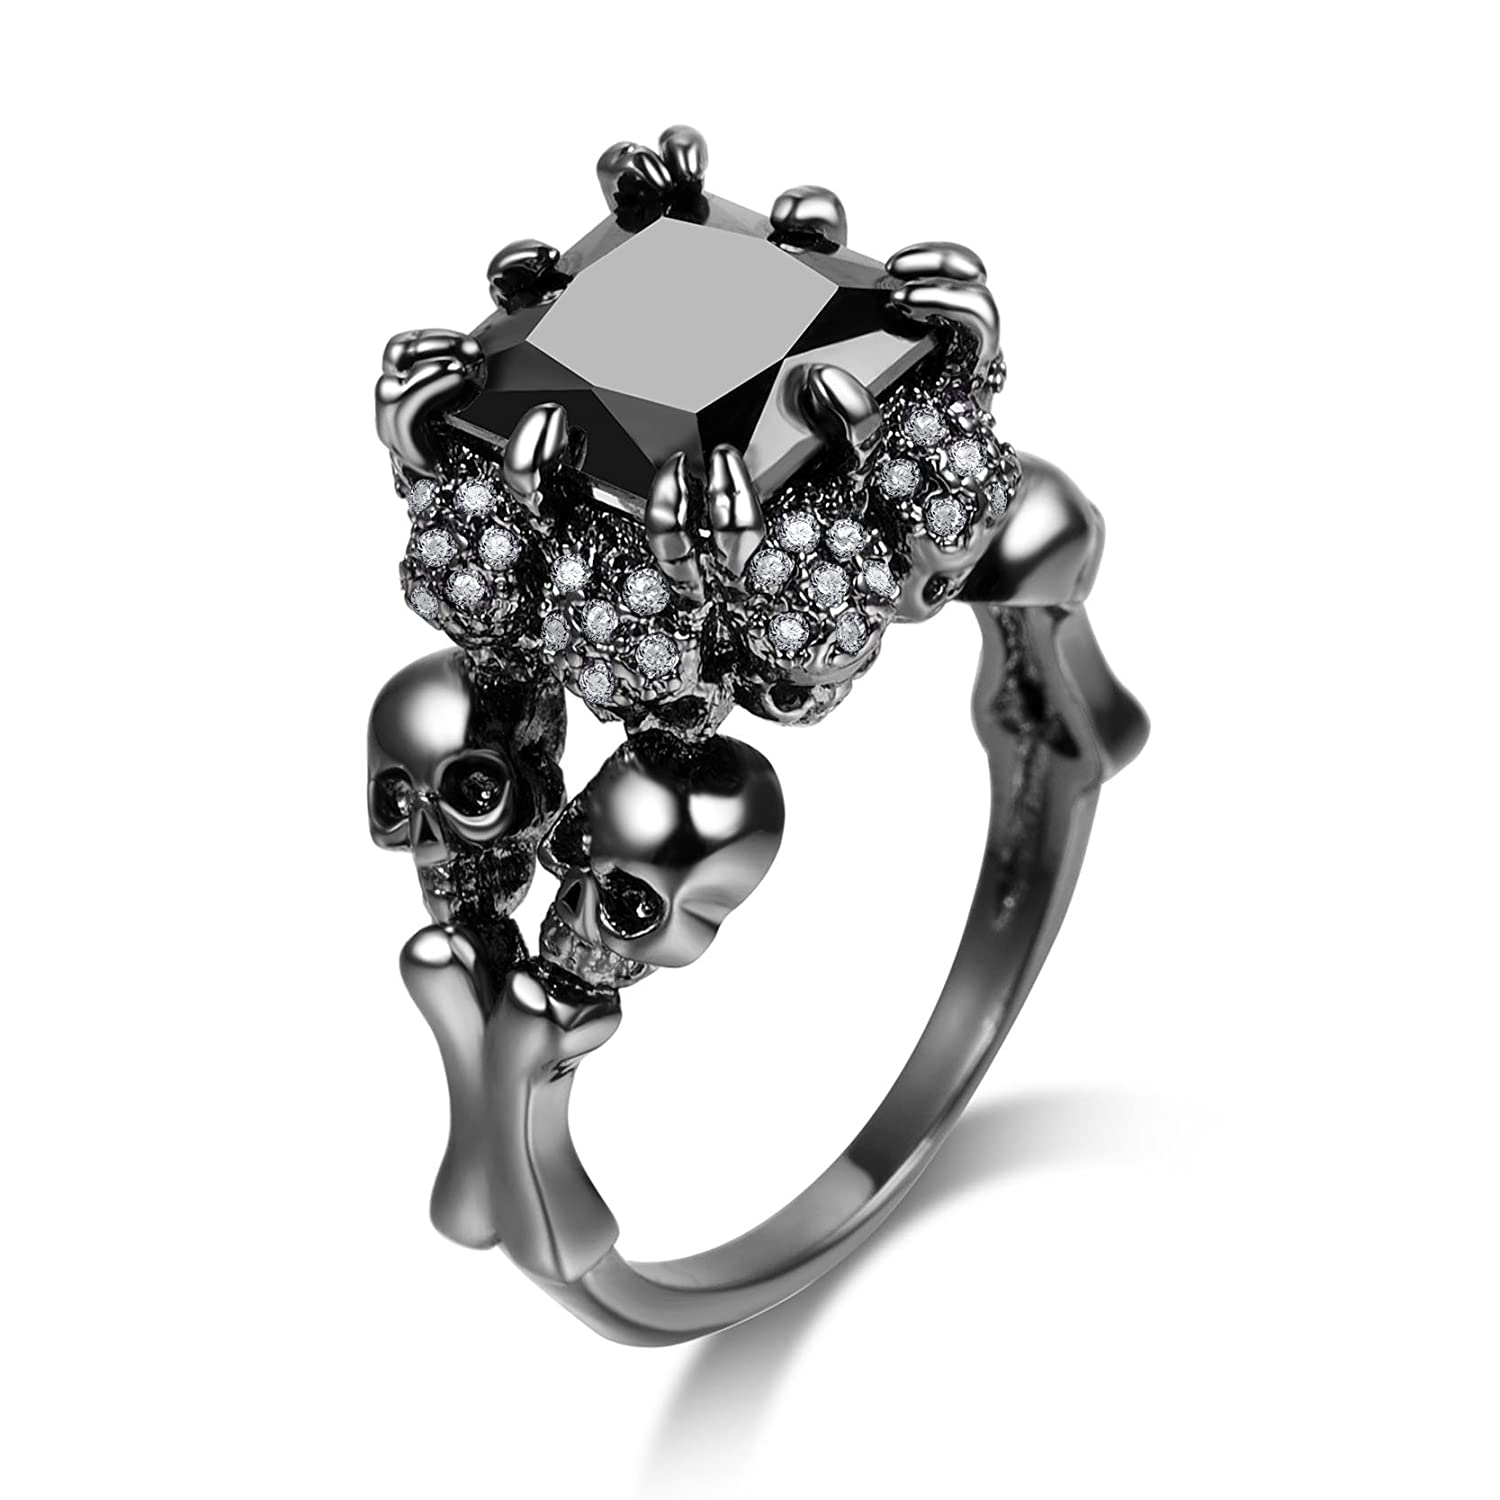 DALARAN Women's Cubic Zirconia Skull Rings Black Claw Gothic Band Cool Party Jewelry DWJLR1182